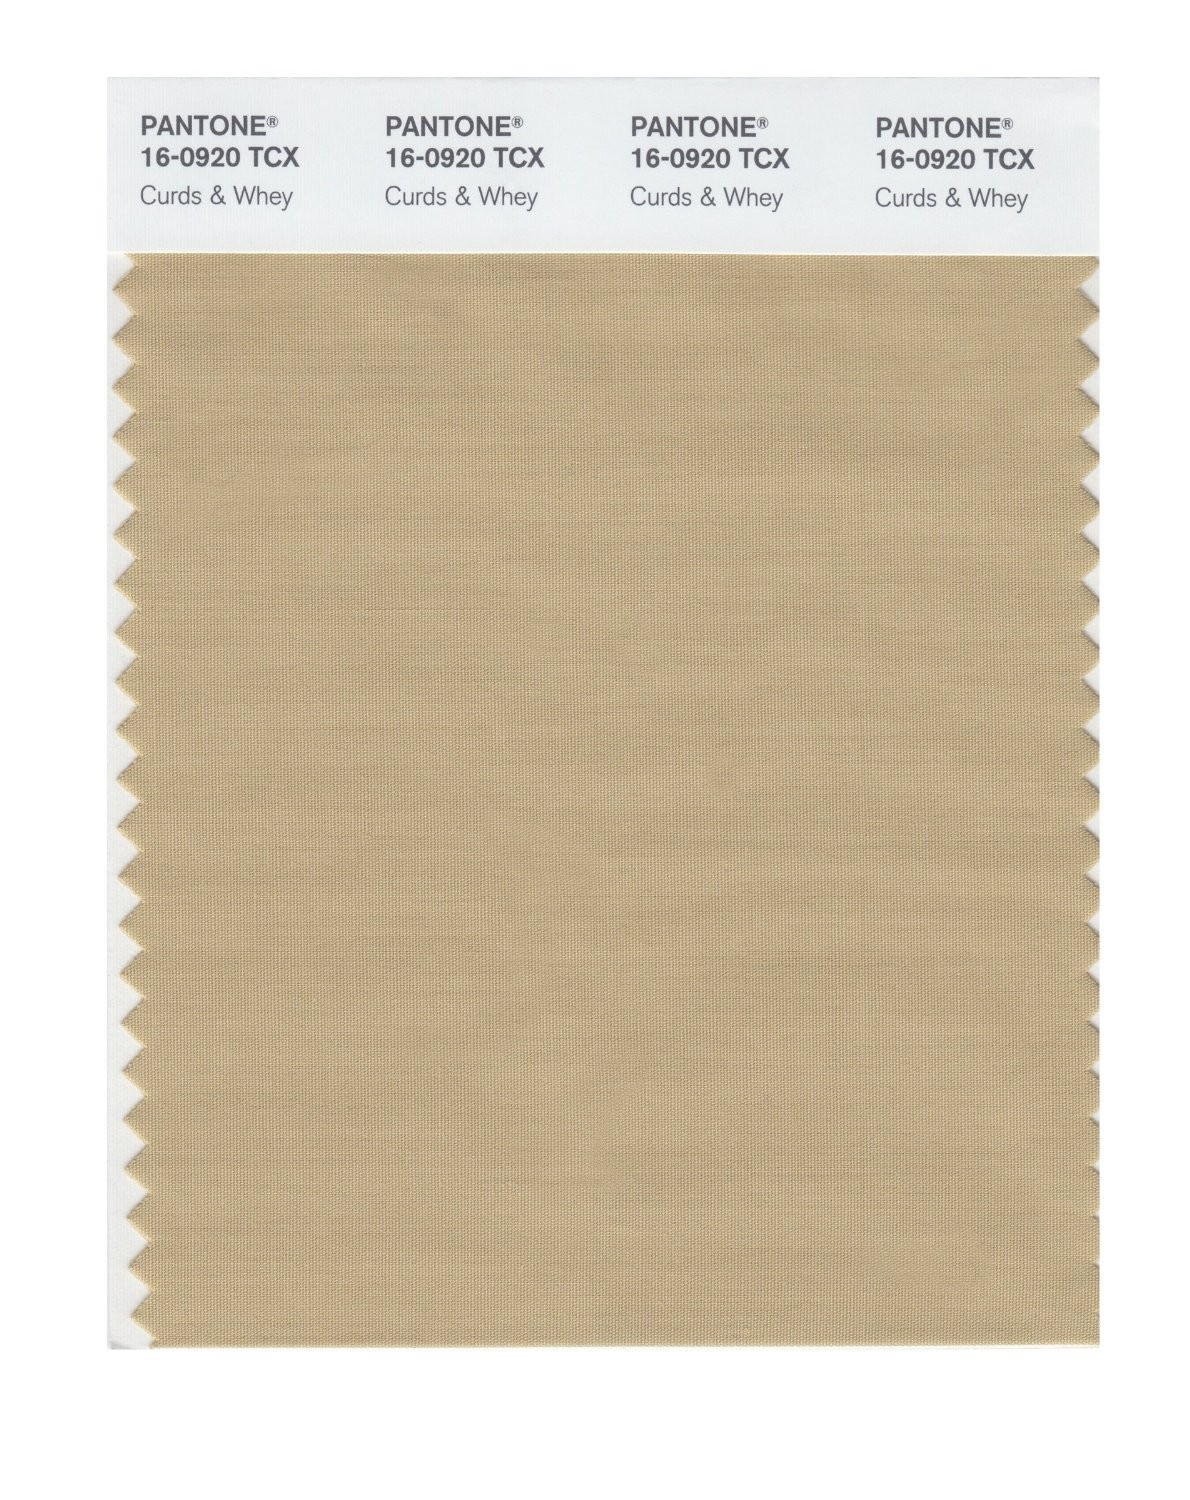 Pantone 16-0920 TCX Swatch Card Curds & Whey